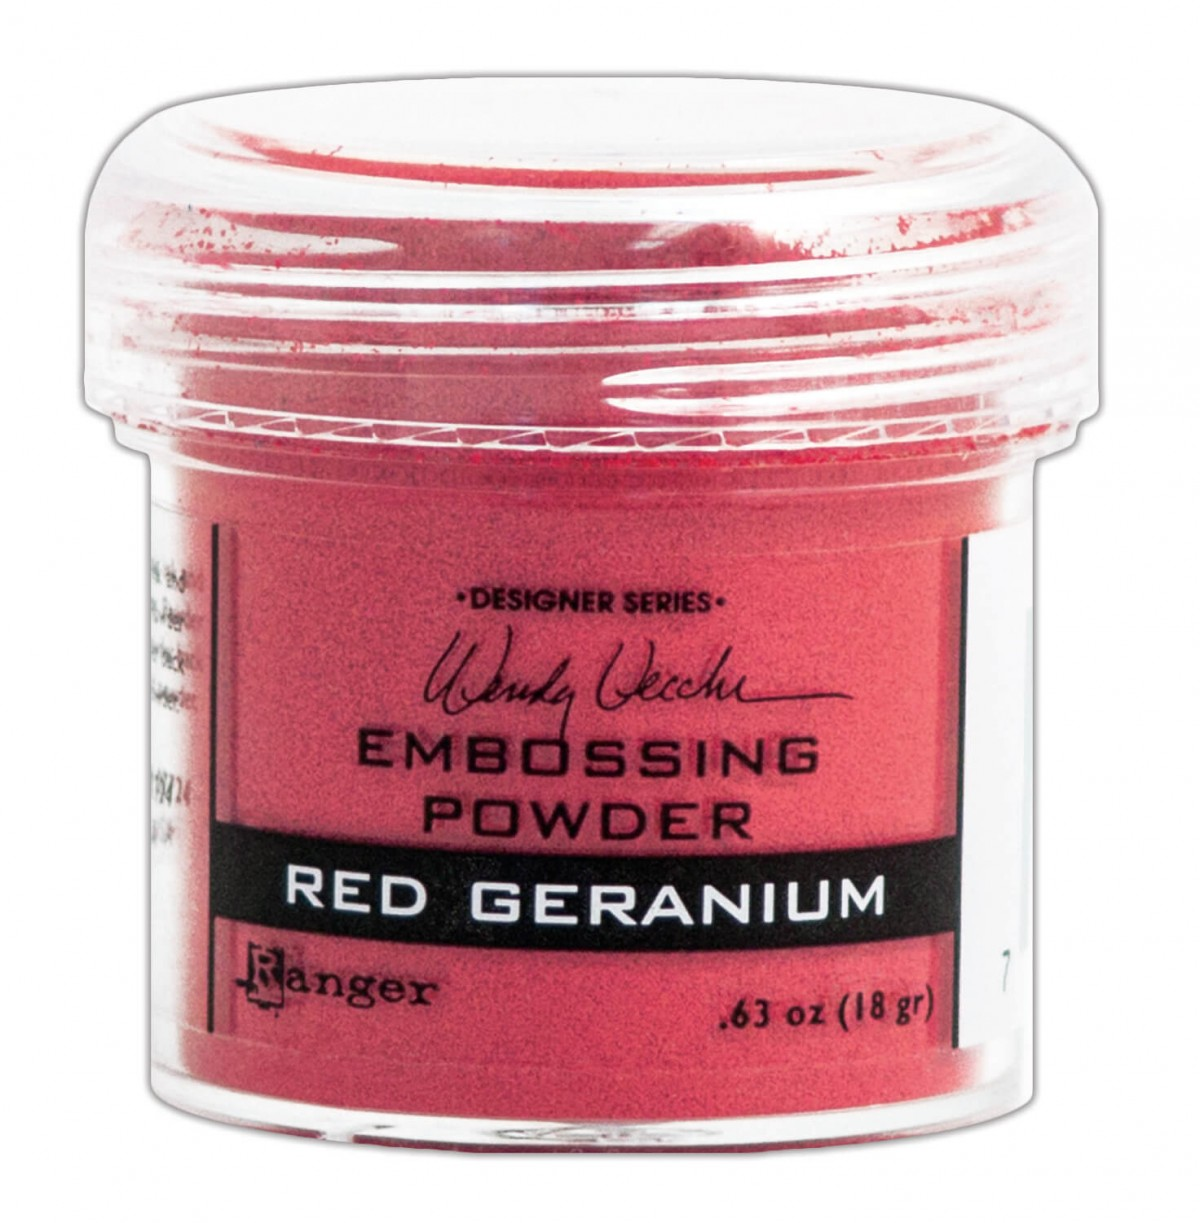 Polvos de Embossing Red Geranium